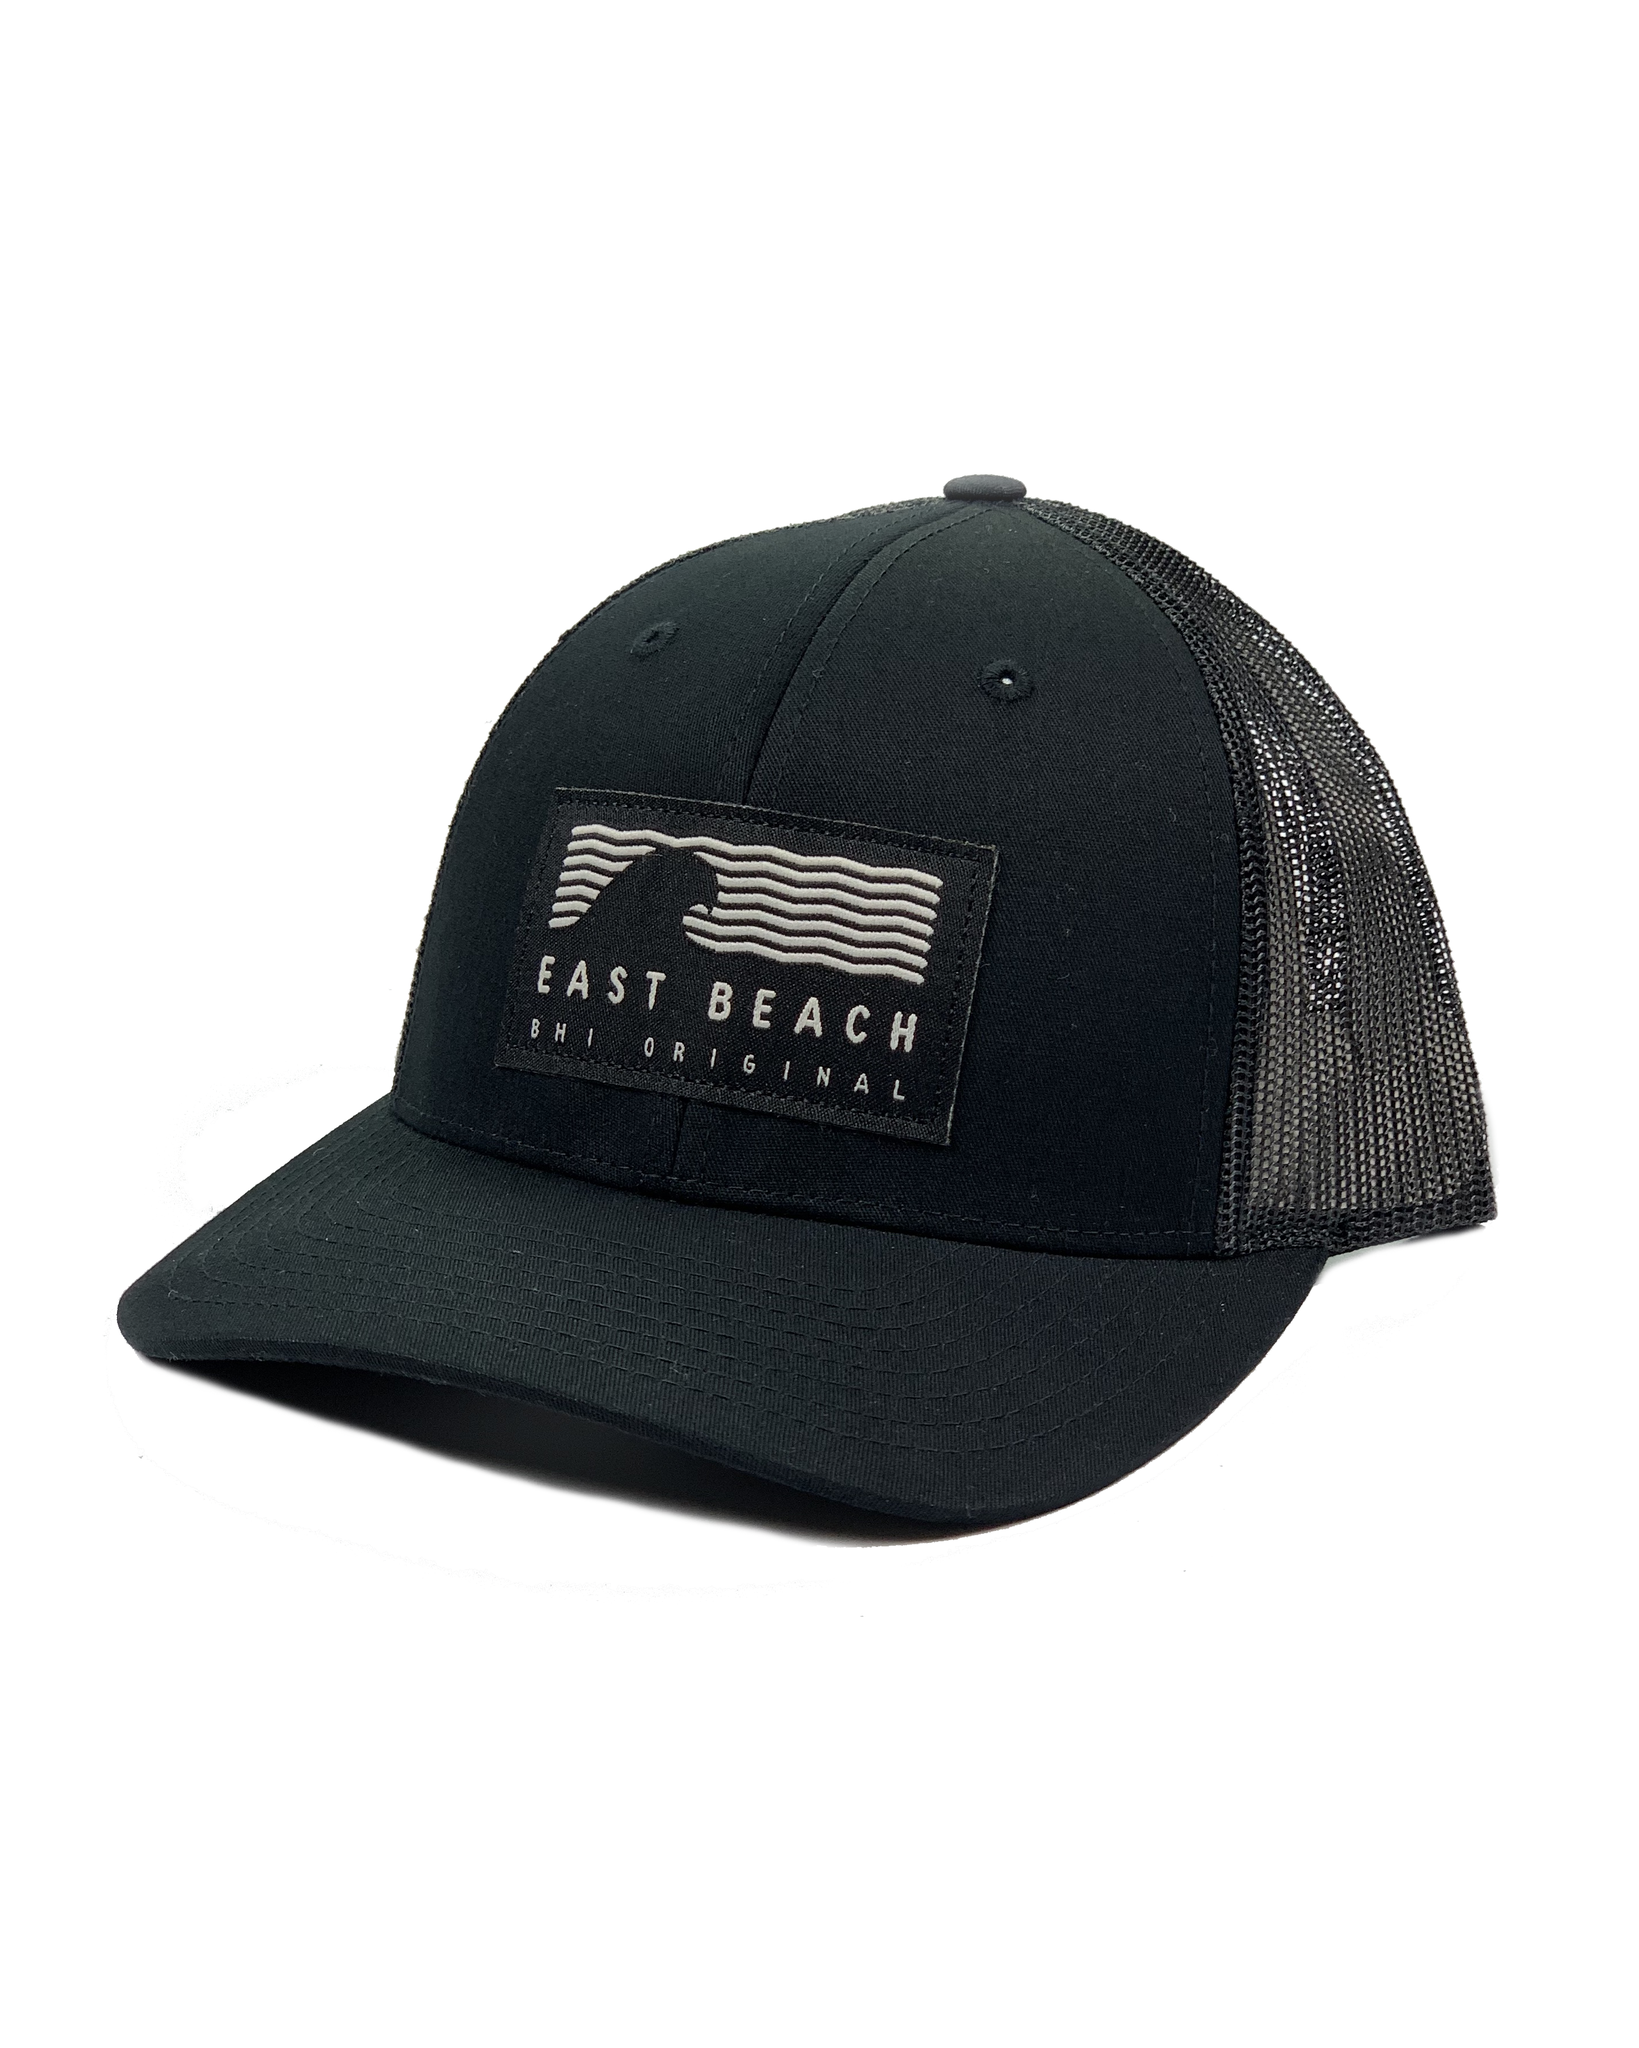 Richardson East Beach Original Woven Label Trucker Hat